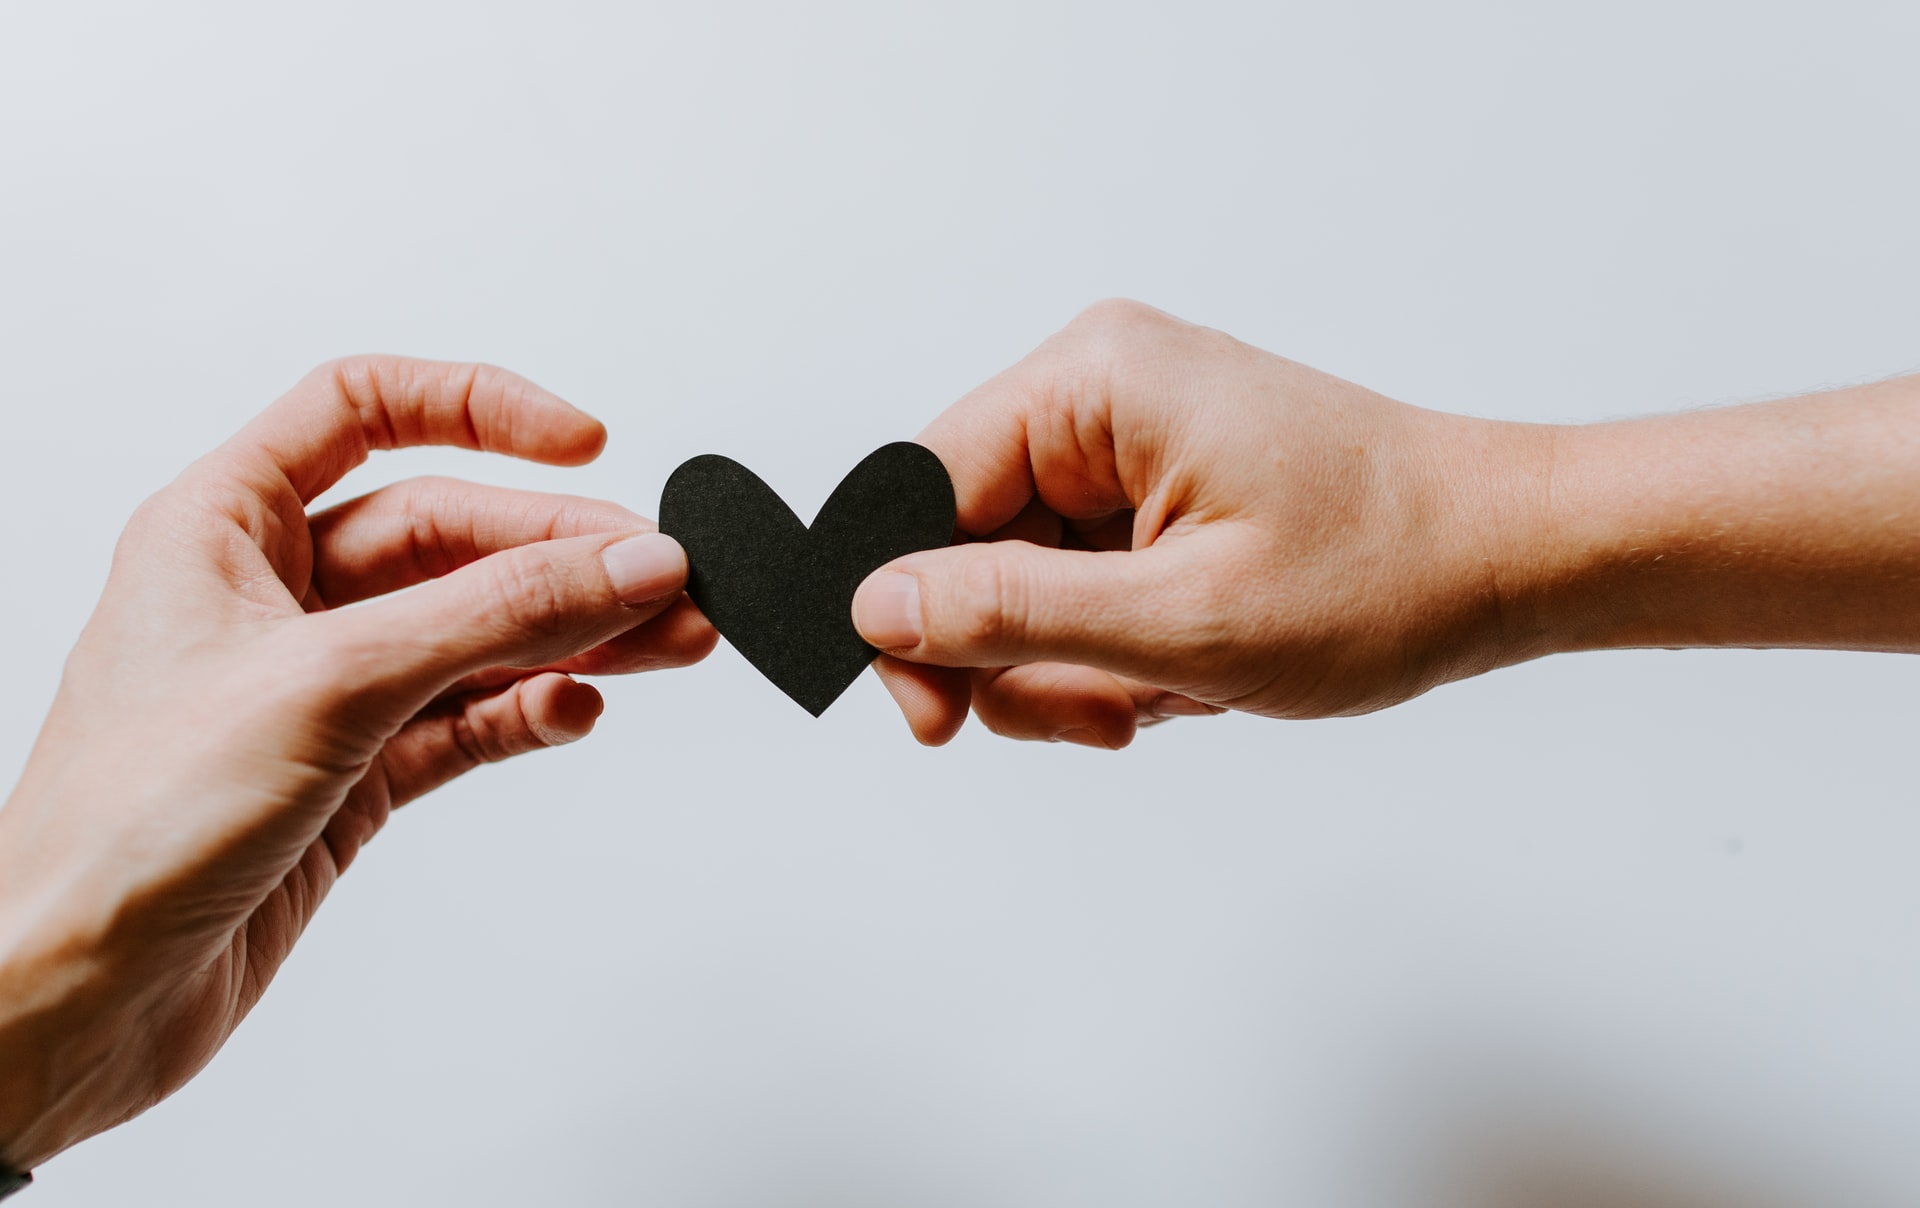 handing a heart to another person